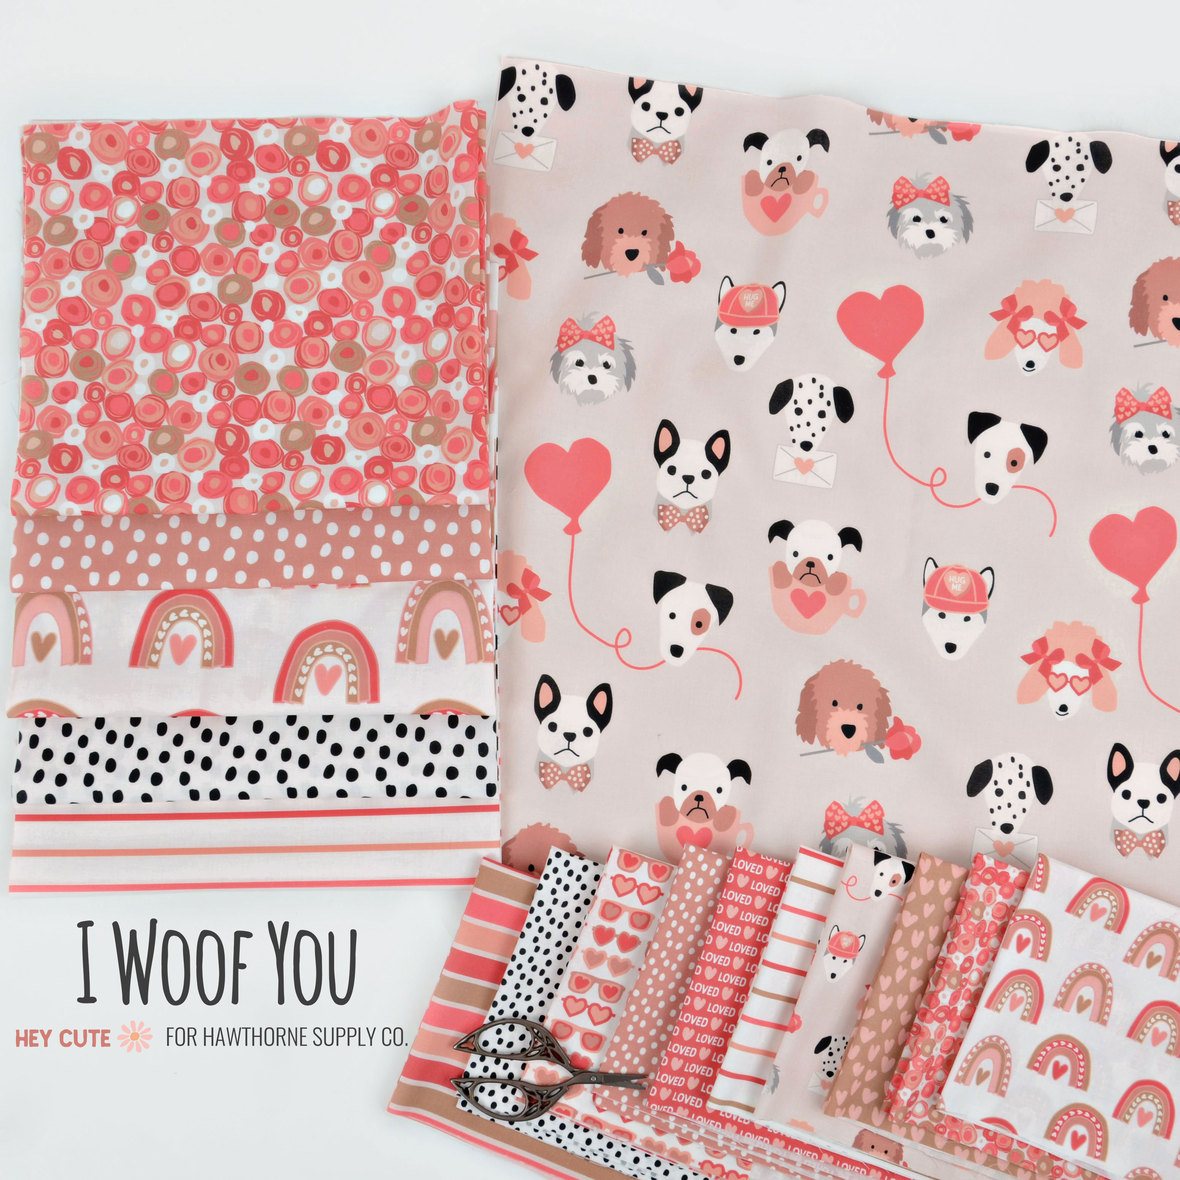 New-I-Woof-You-Valentine s-Day-Fabric-Hey-Cute-Design-for-Hawthorne-Supply-Co